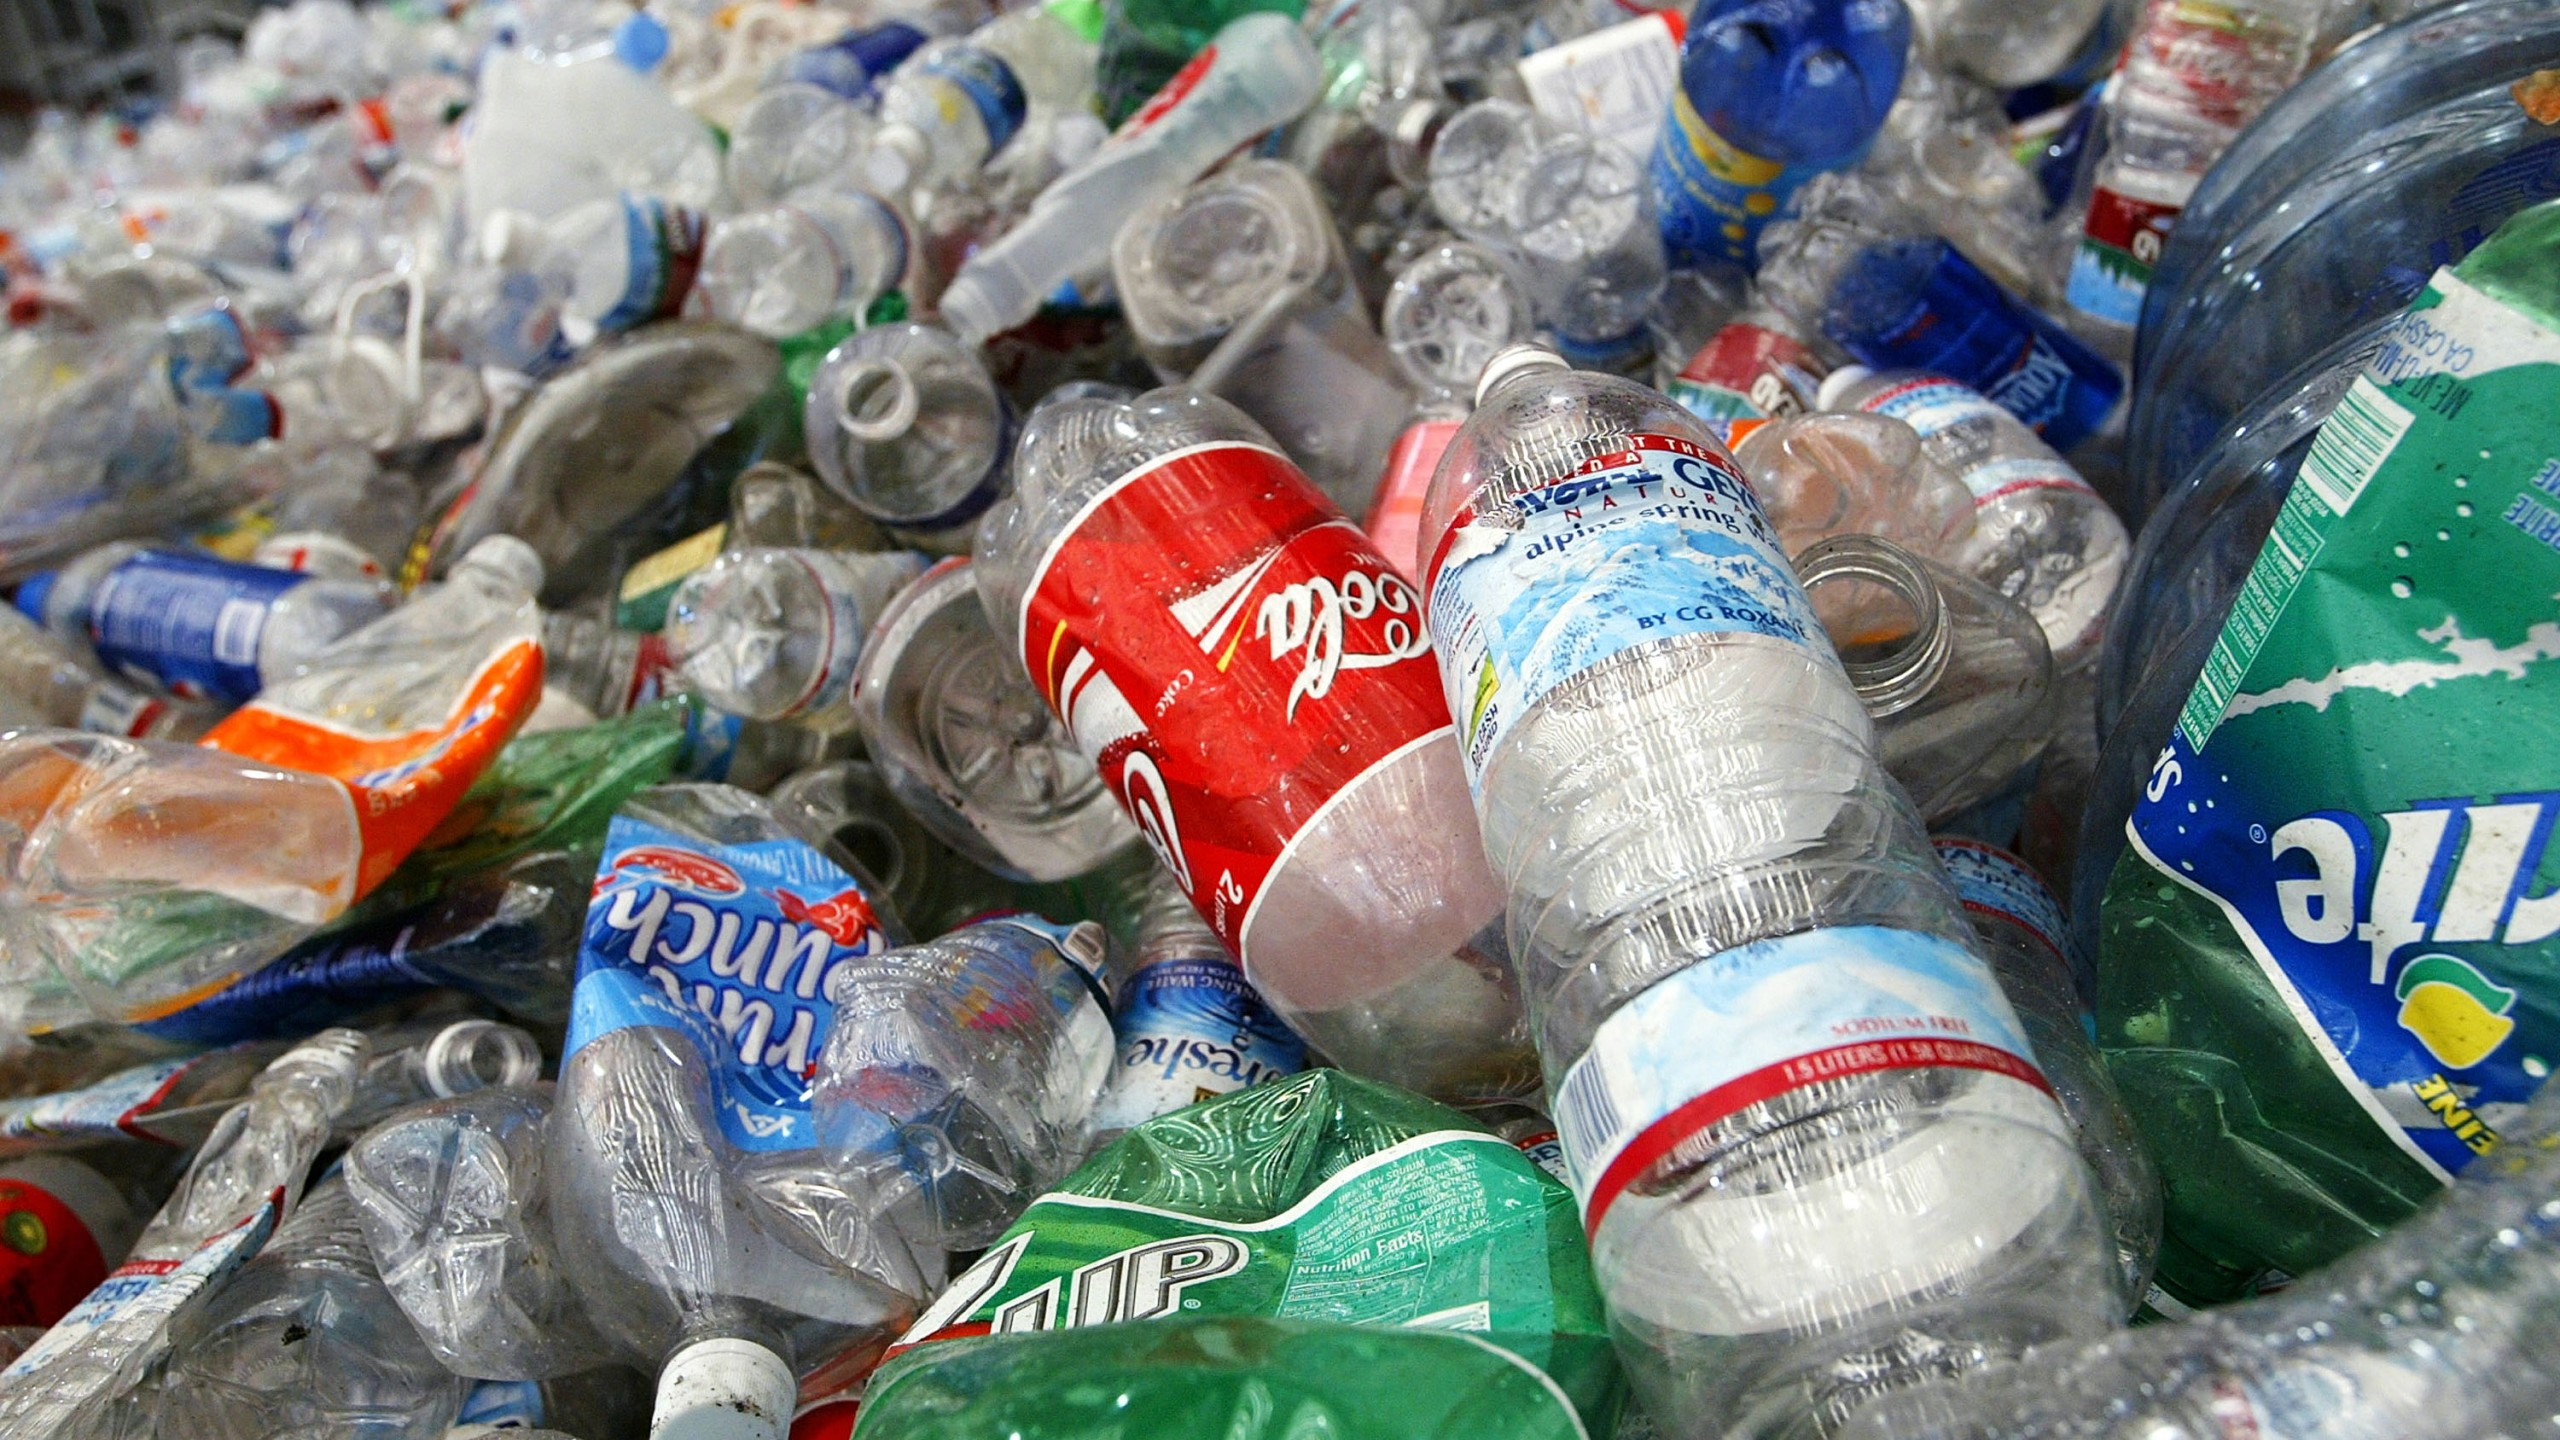 Recycled plastic bottles are seen at the San Francisco Recycling Center March 2, 2005, in San Francisco. (Justin Sullivan/Getty Images)